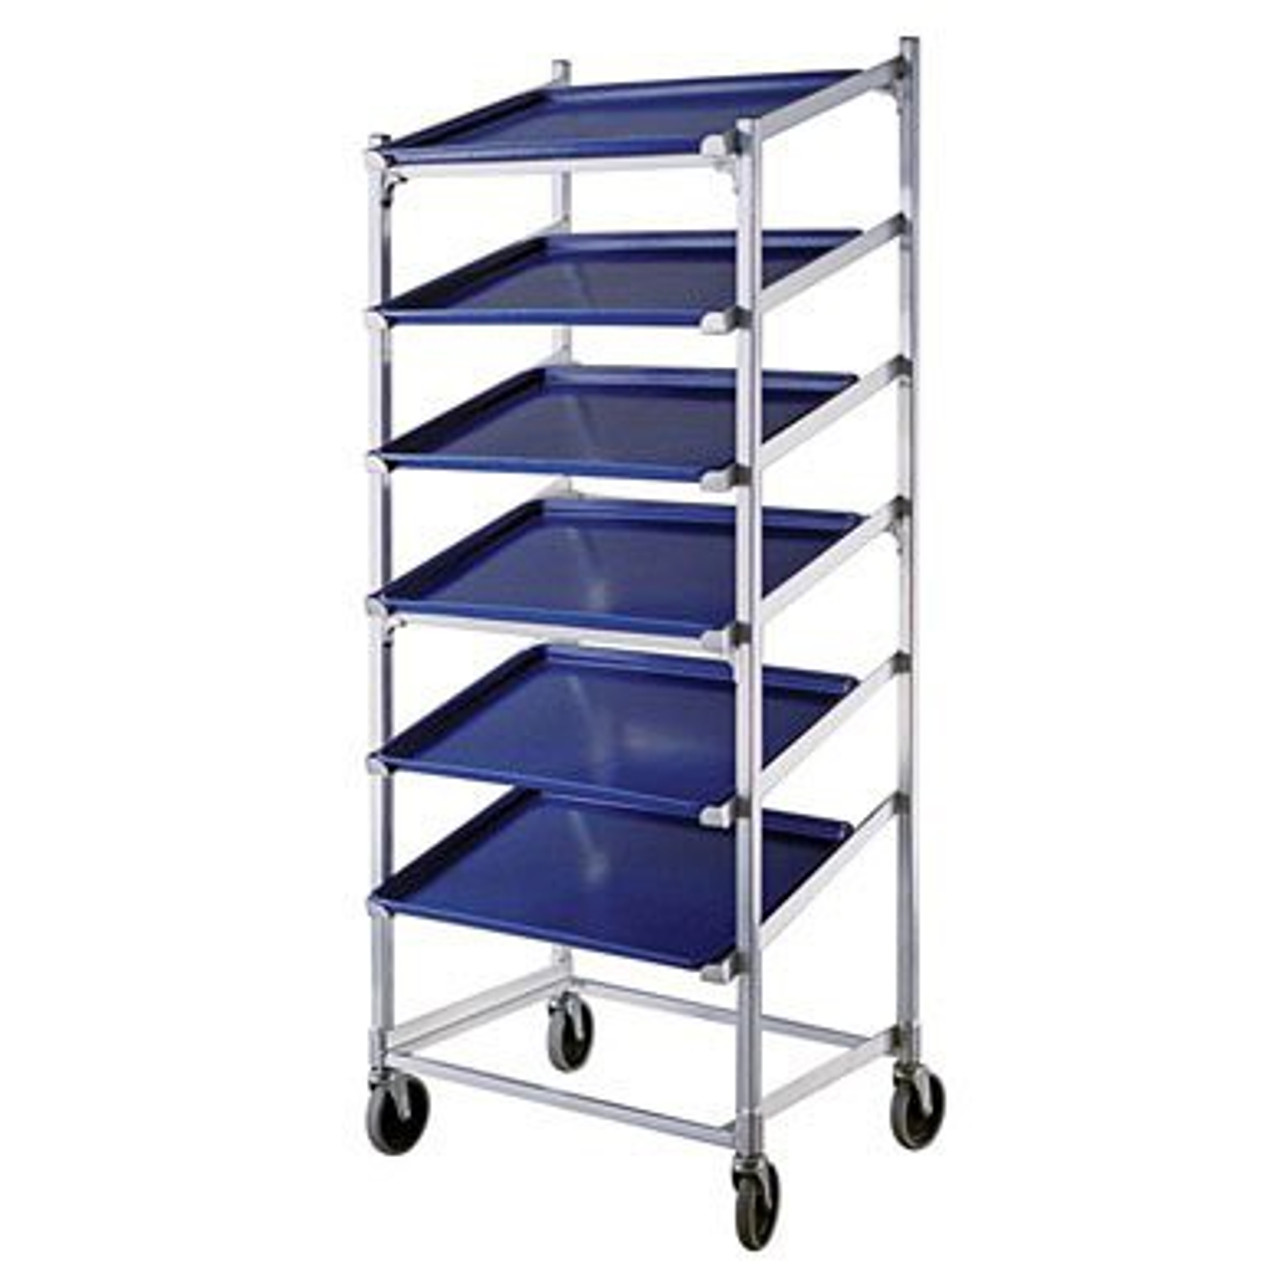 Aluminum 7 Tier - Slant Display Platter Dolly